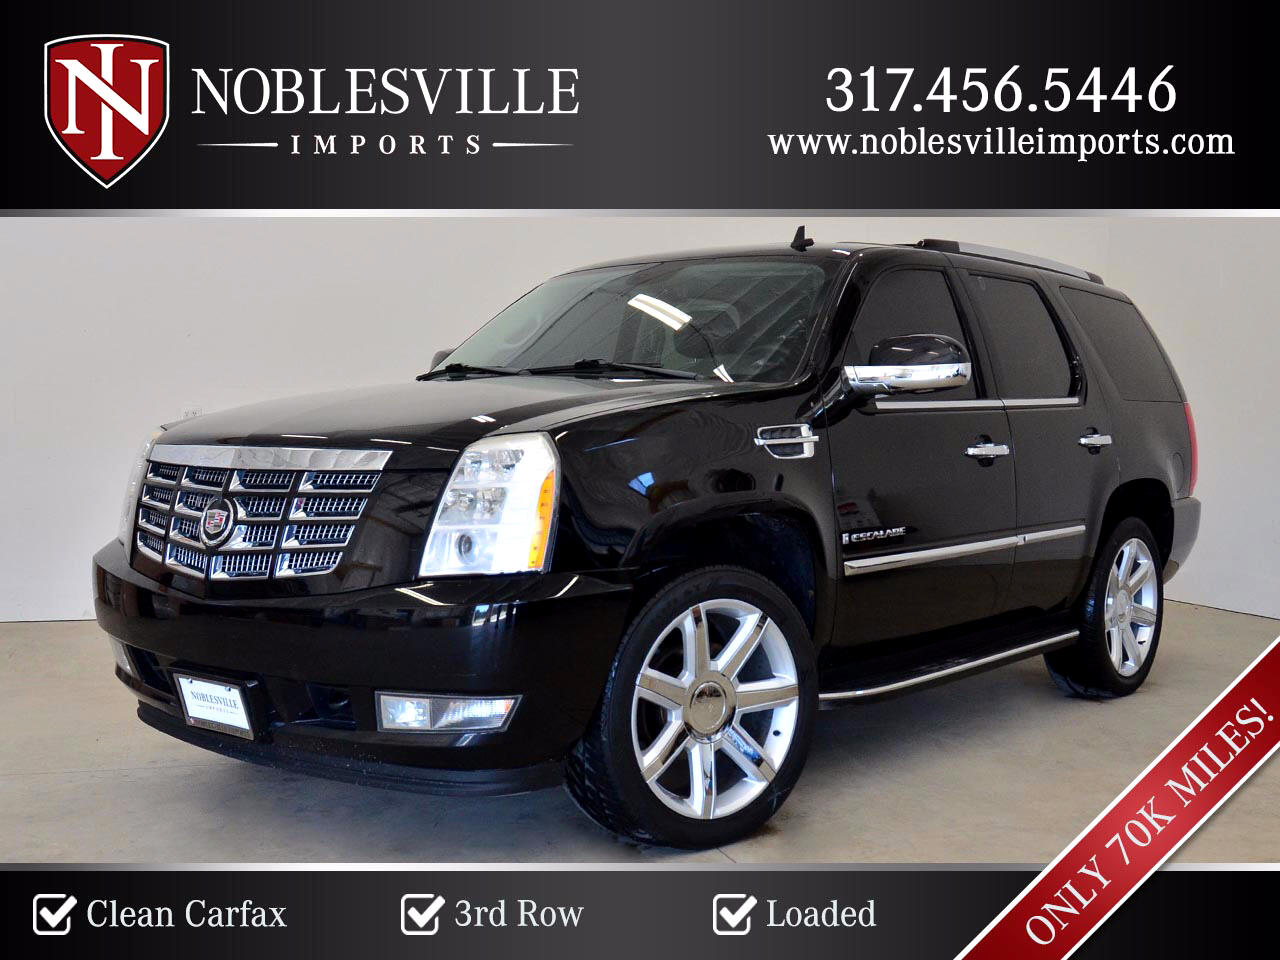 2009 Cadillac Escalade Luxury AWD